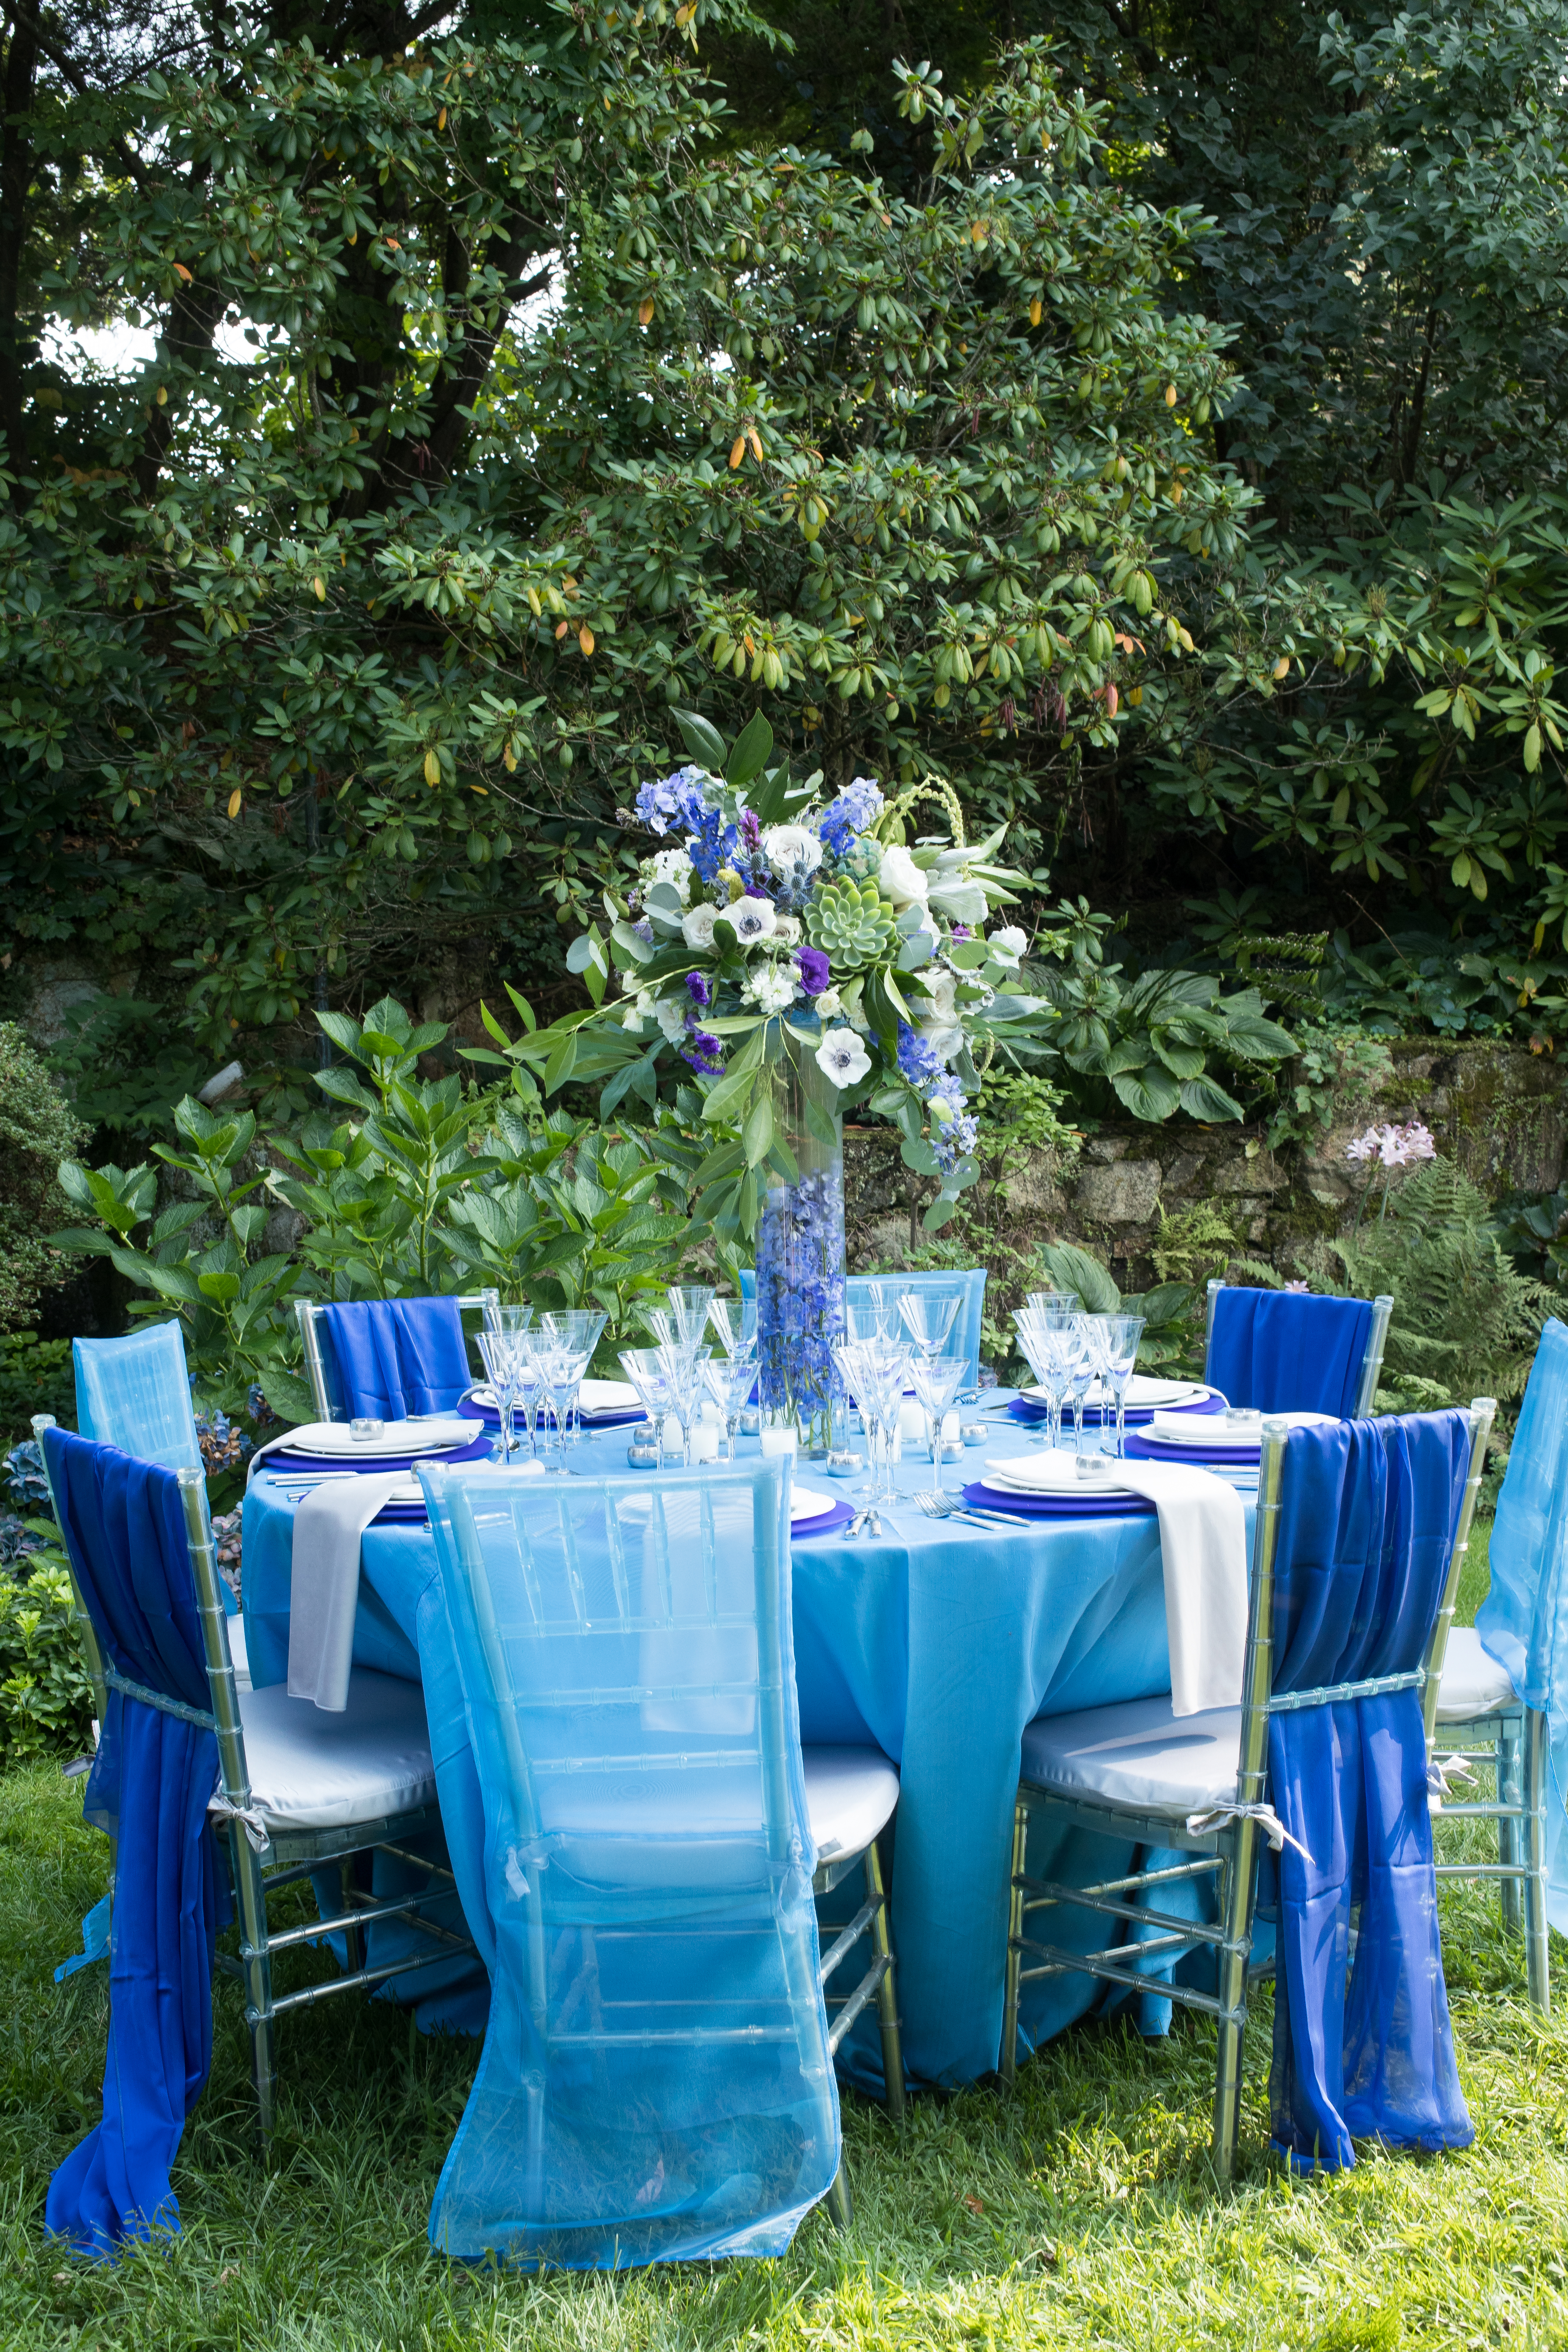 This gorgeous combination of blues and purples is perfect for a garden wedding. Read the blog to get more inspiration and download the free venue guide to find the best place for your wedding!